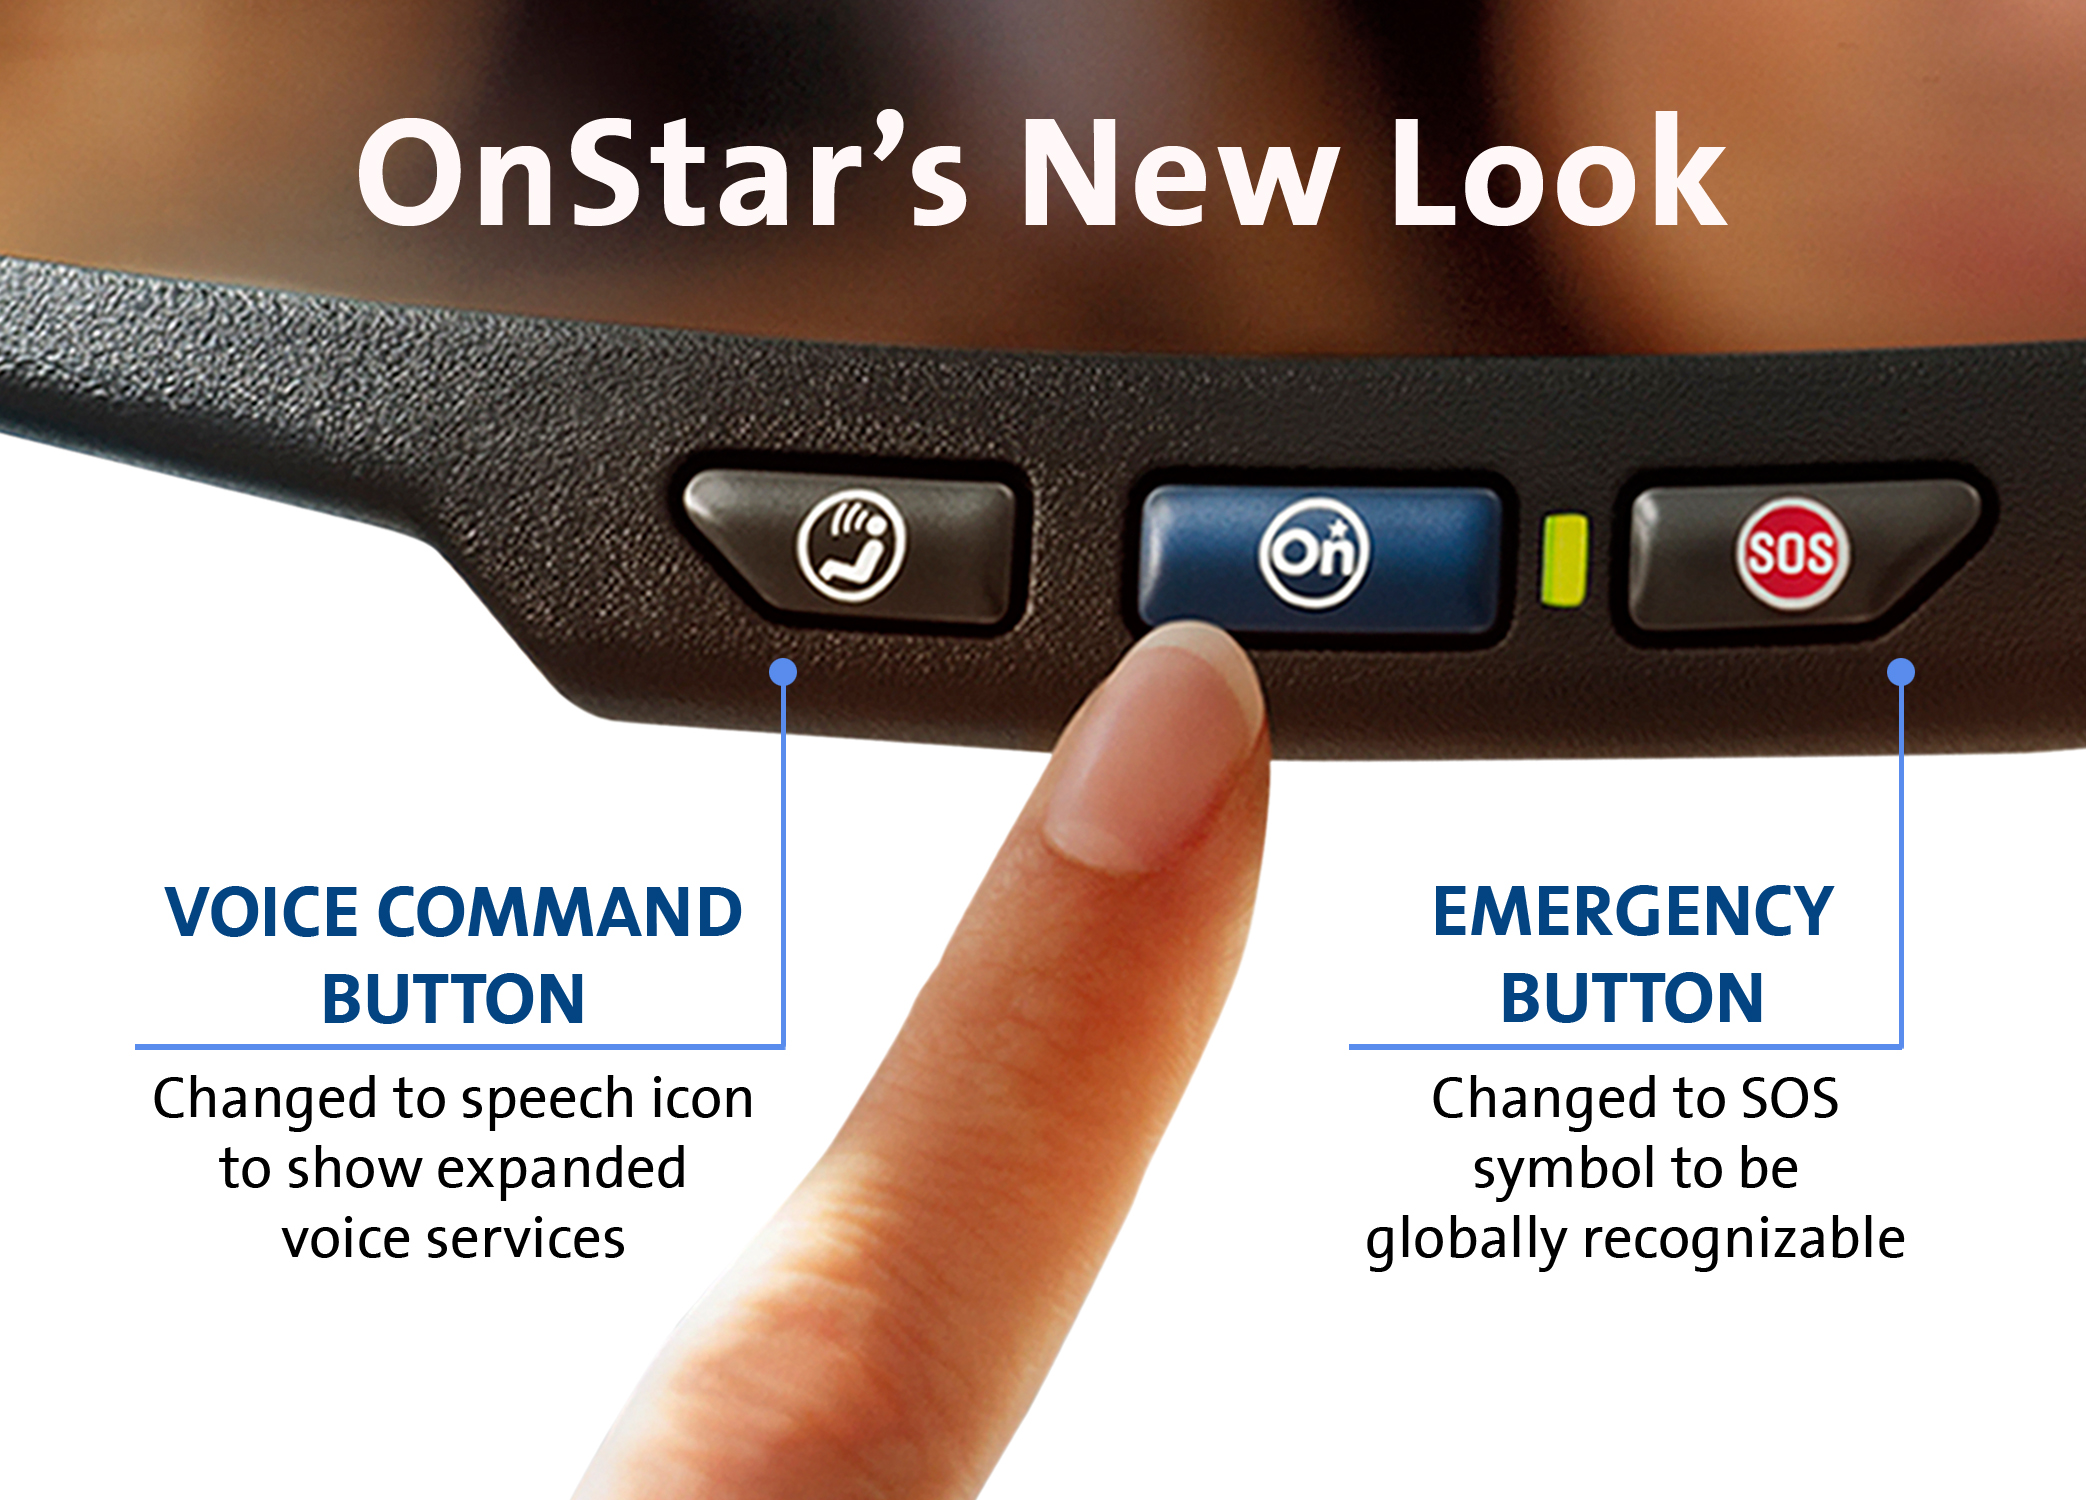 Bmw Of Fresno >> OnStar Mirror Gets A Minor Makeover